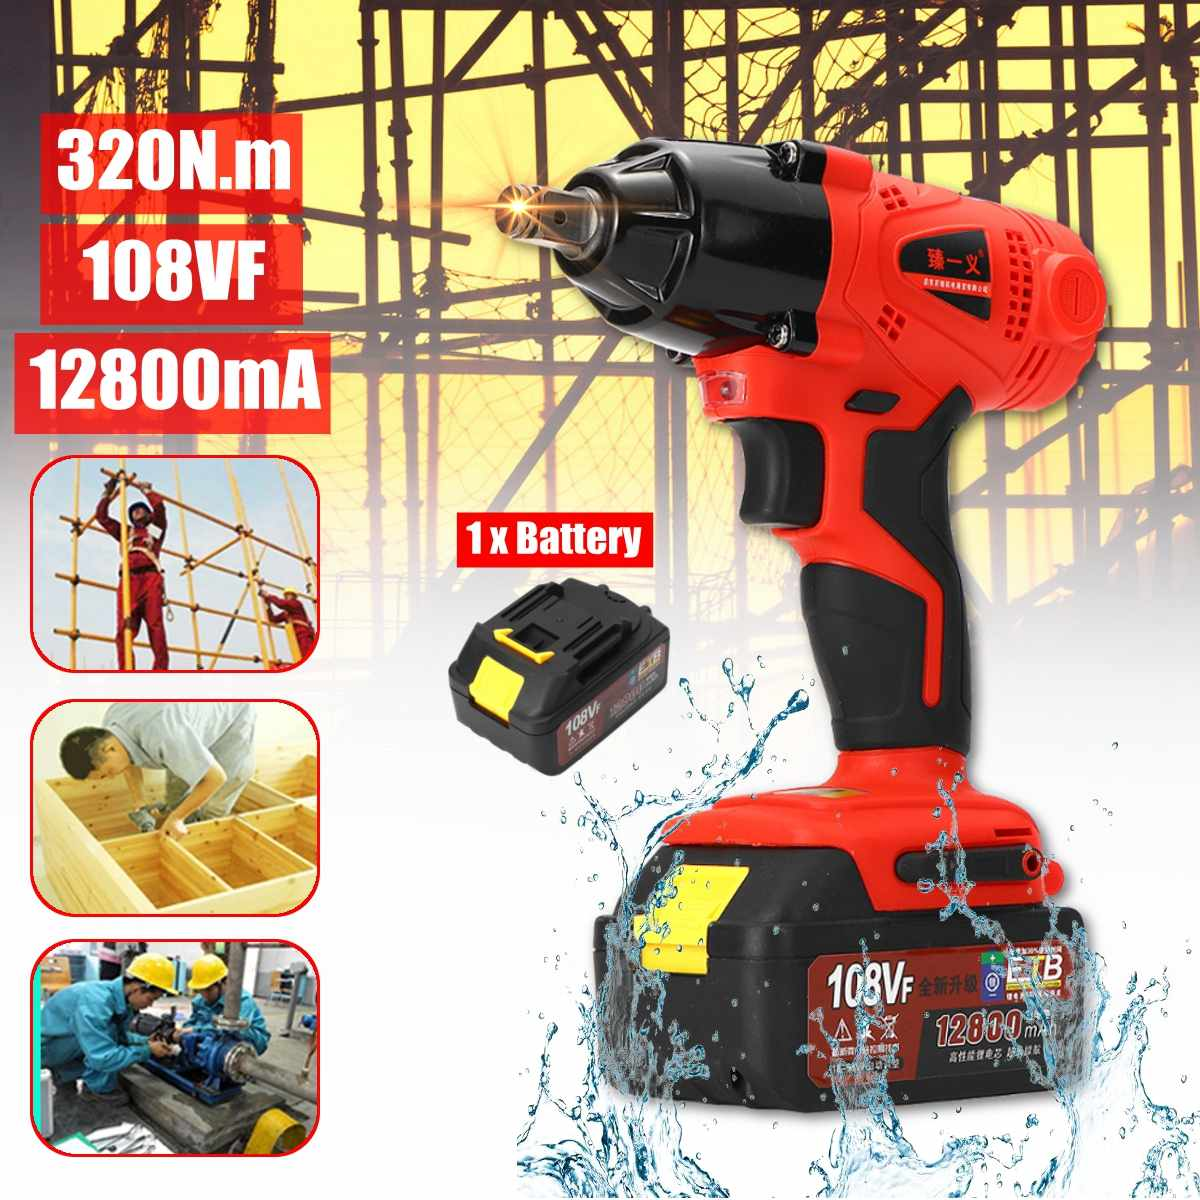 108VF 12800Ah Li-ion Electric Impact Wrench Guns 320Nm High Torque Impact Wrench Cordless 1/2 Batteries 1 Charger Power Tool